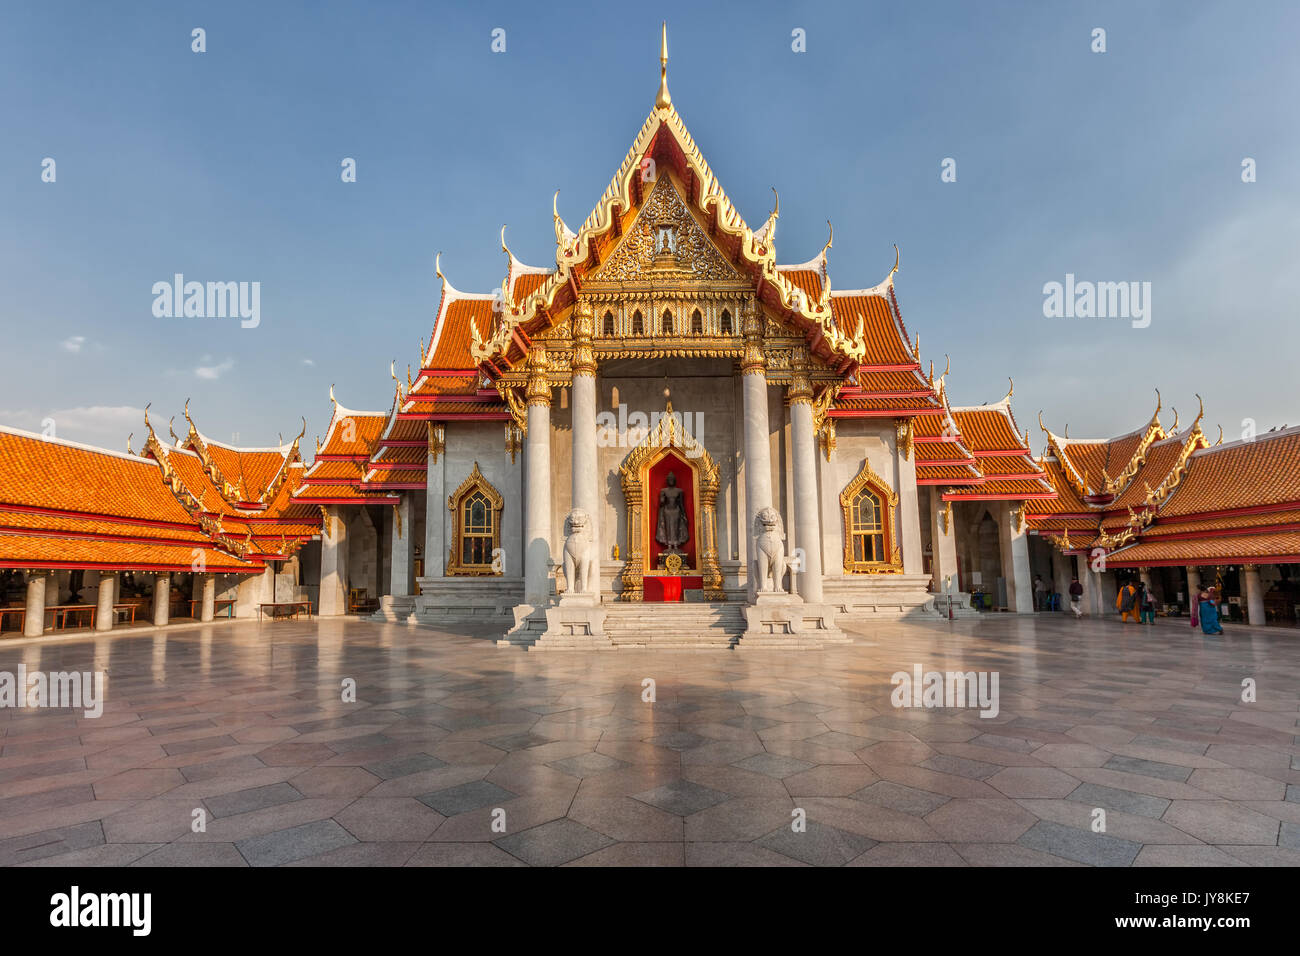 The Marble Temple at sunset, Bangkok, Thailand - Stock Image